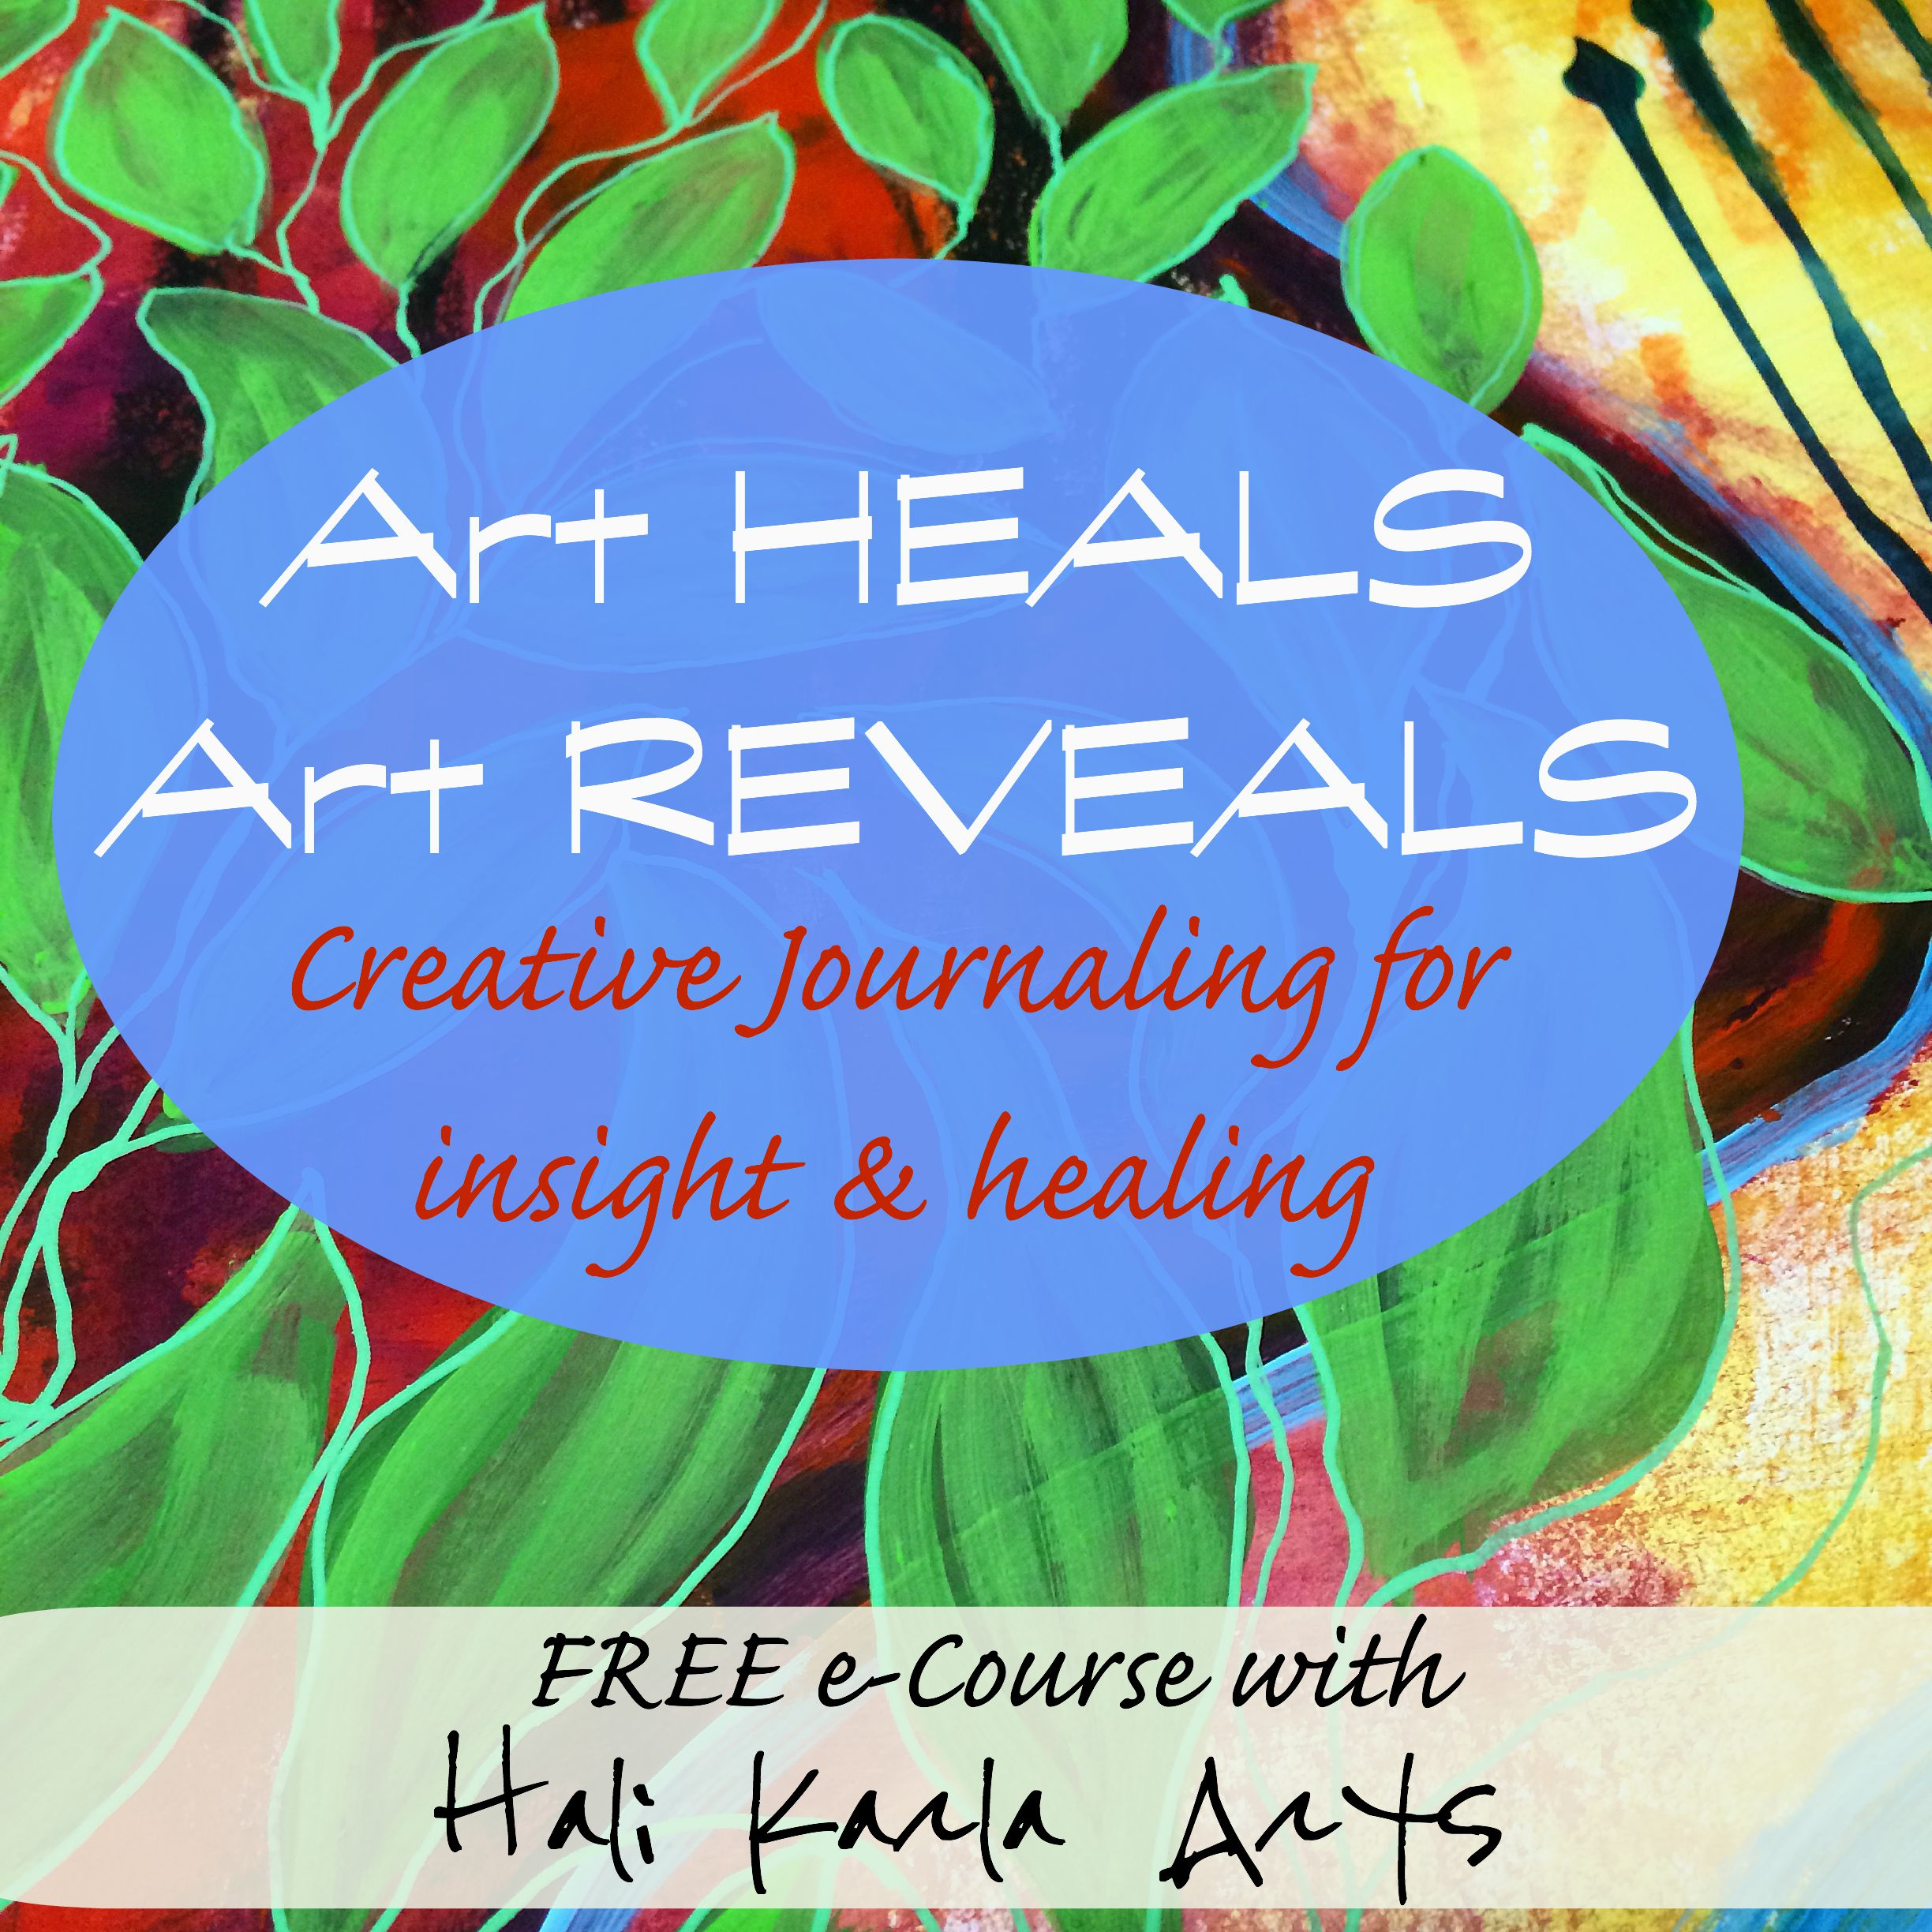 Art Heals Art Reveals Free mini e-course with Hali Karla Arts